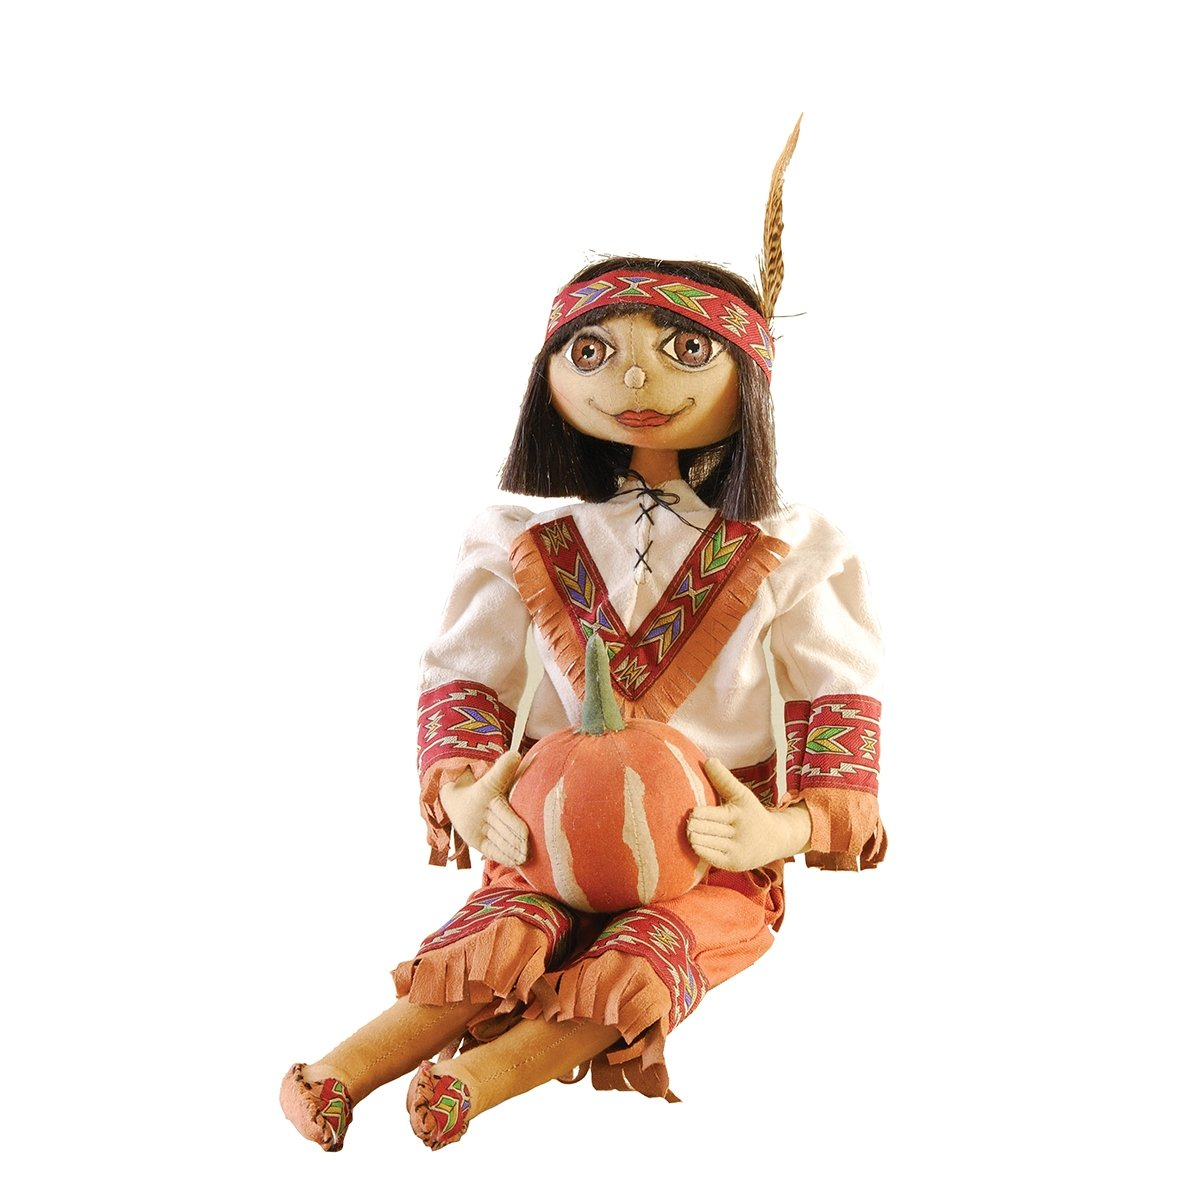 Sean Indian Boy Fabric Figurine with Hand-Painted Face and Intricate Detailing